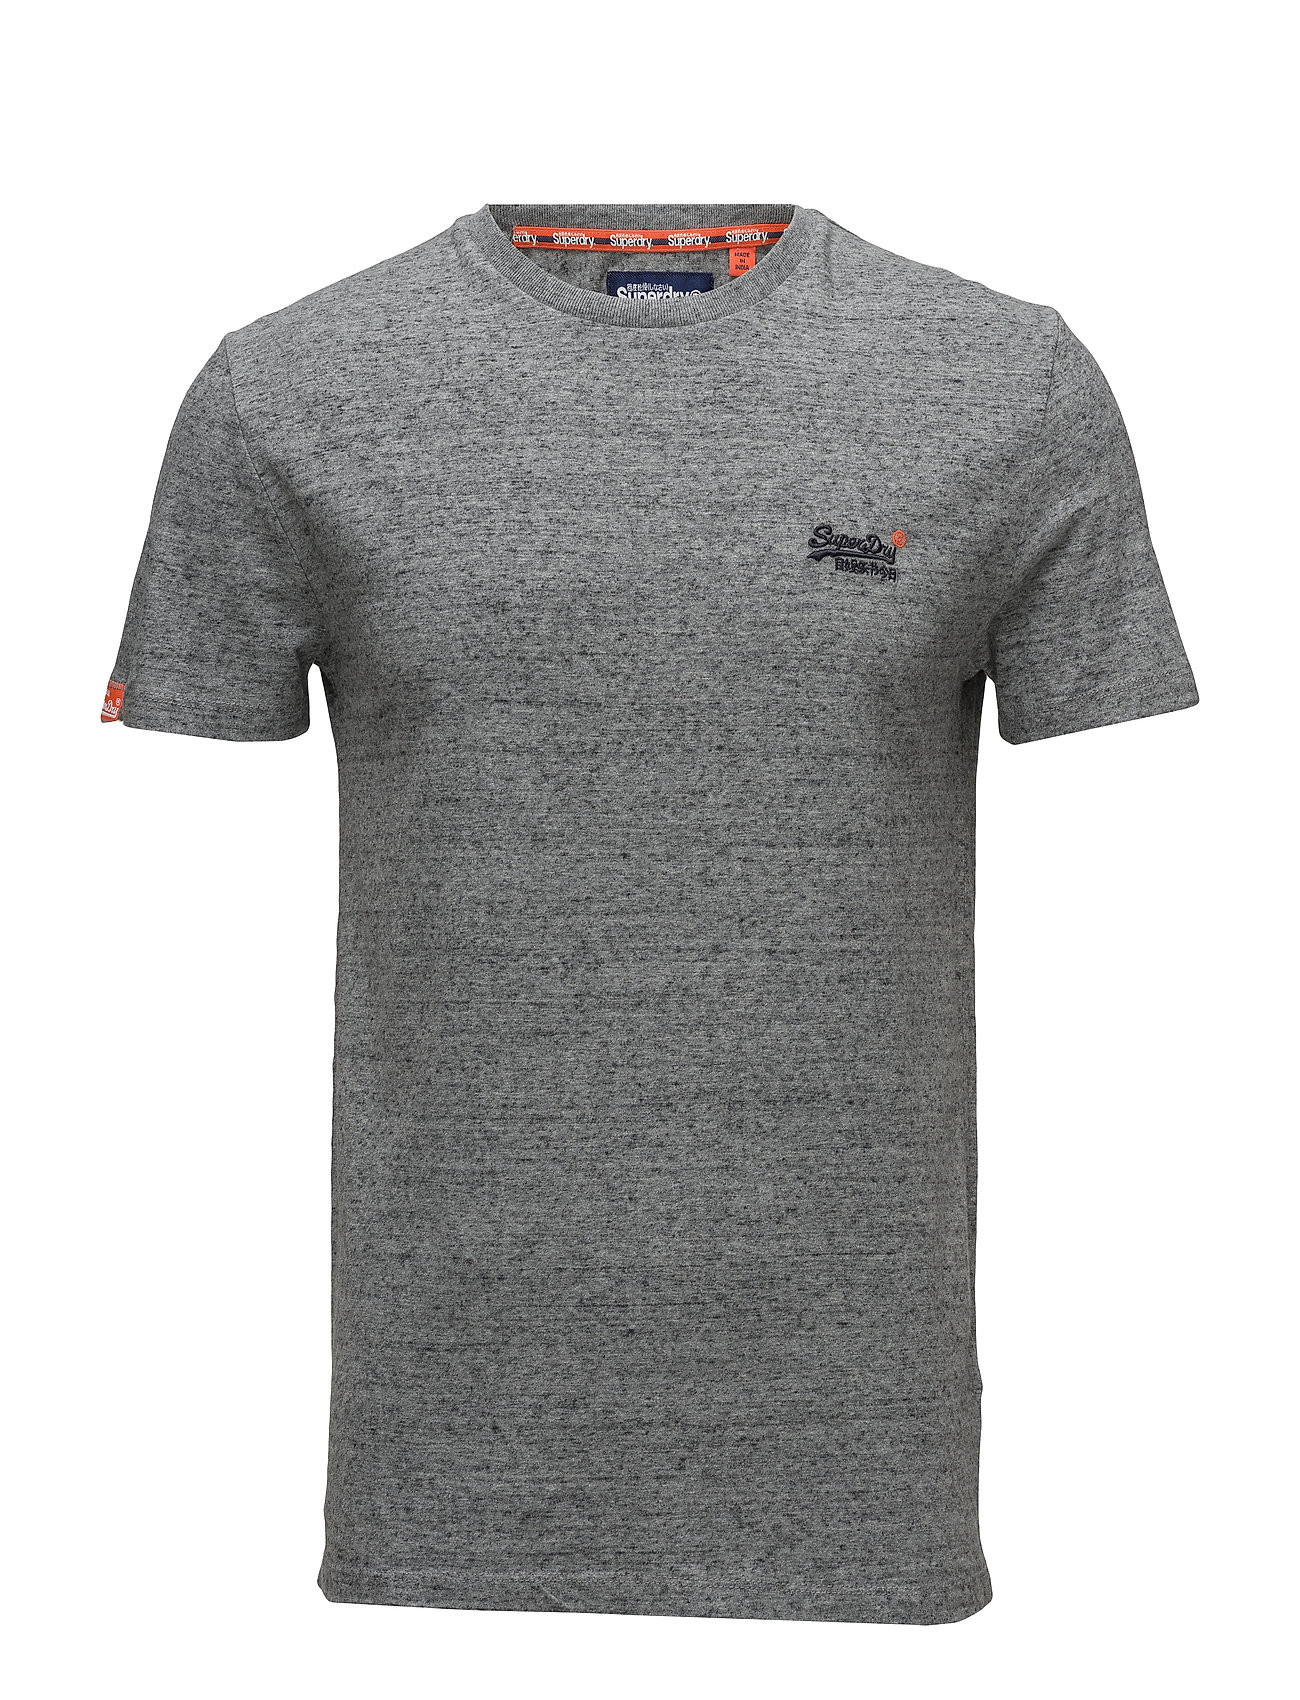 Superdry ORANGE LABEL VNTGE EMB S/S TEE - FLINT STEEL GRIT